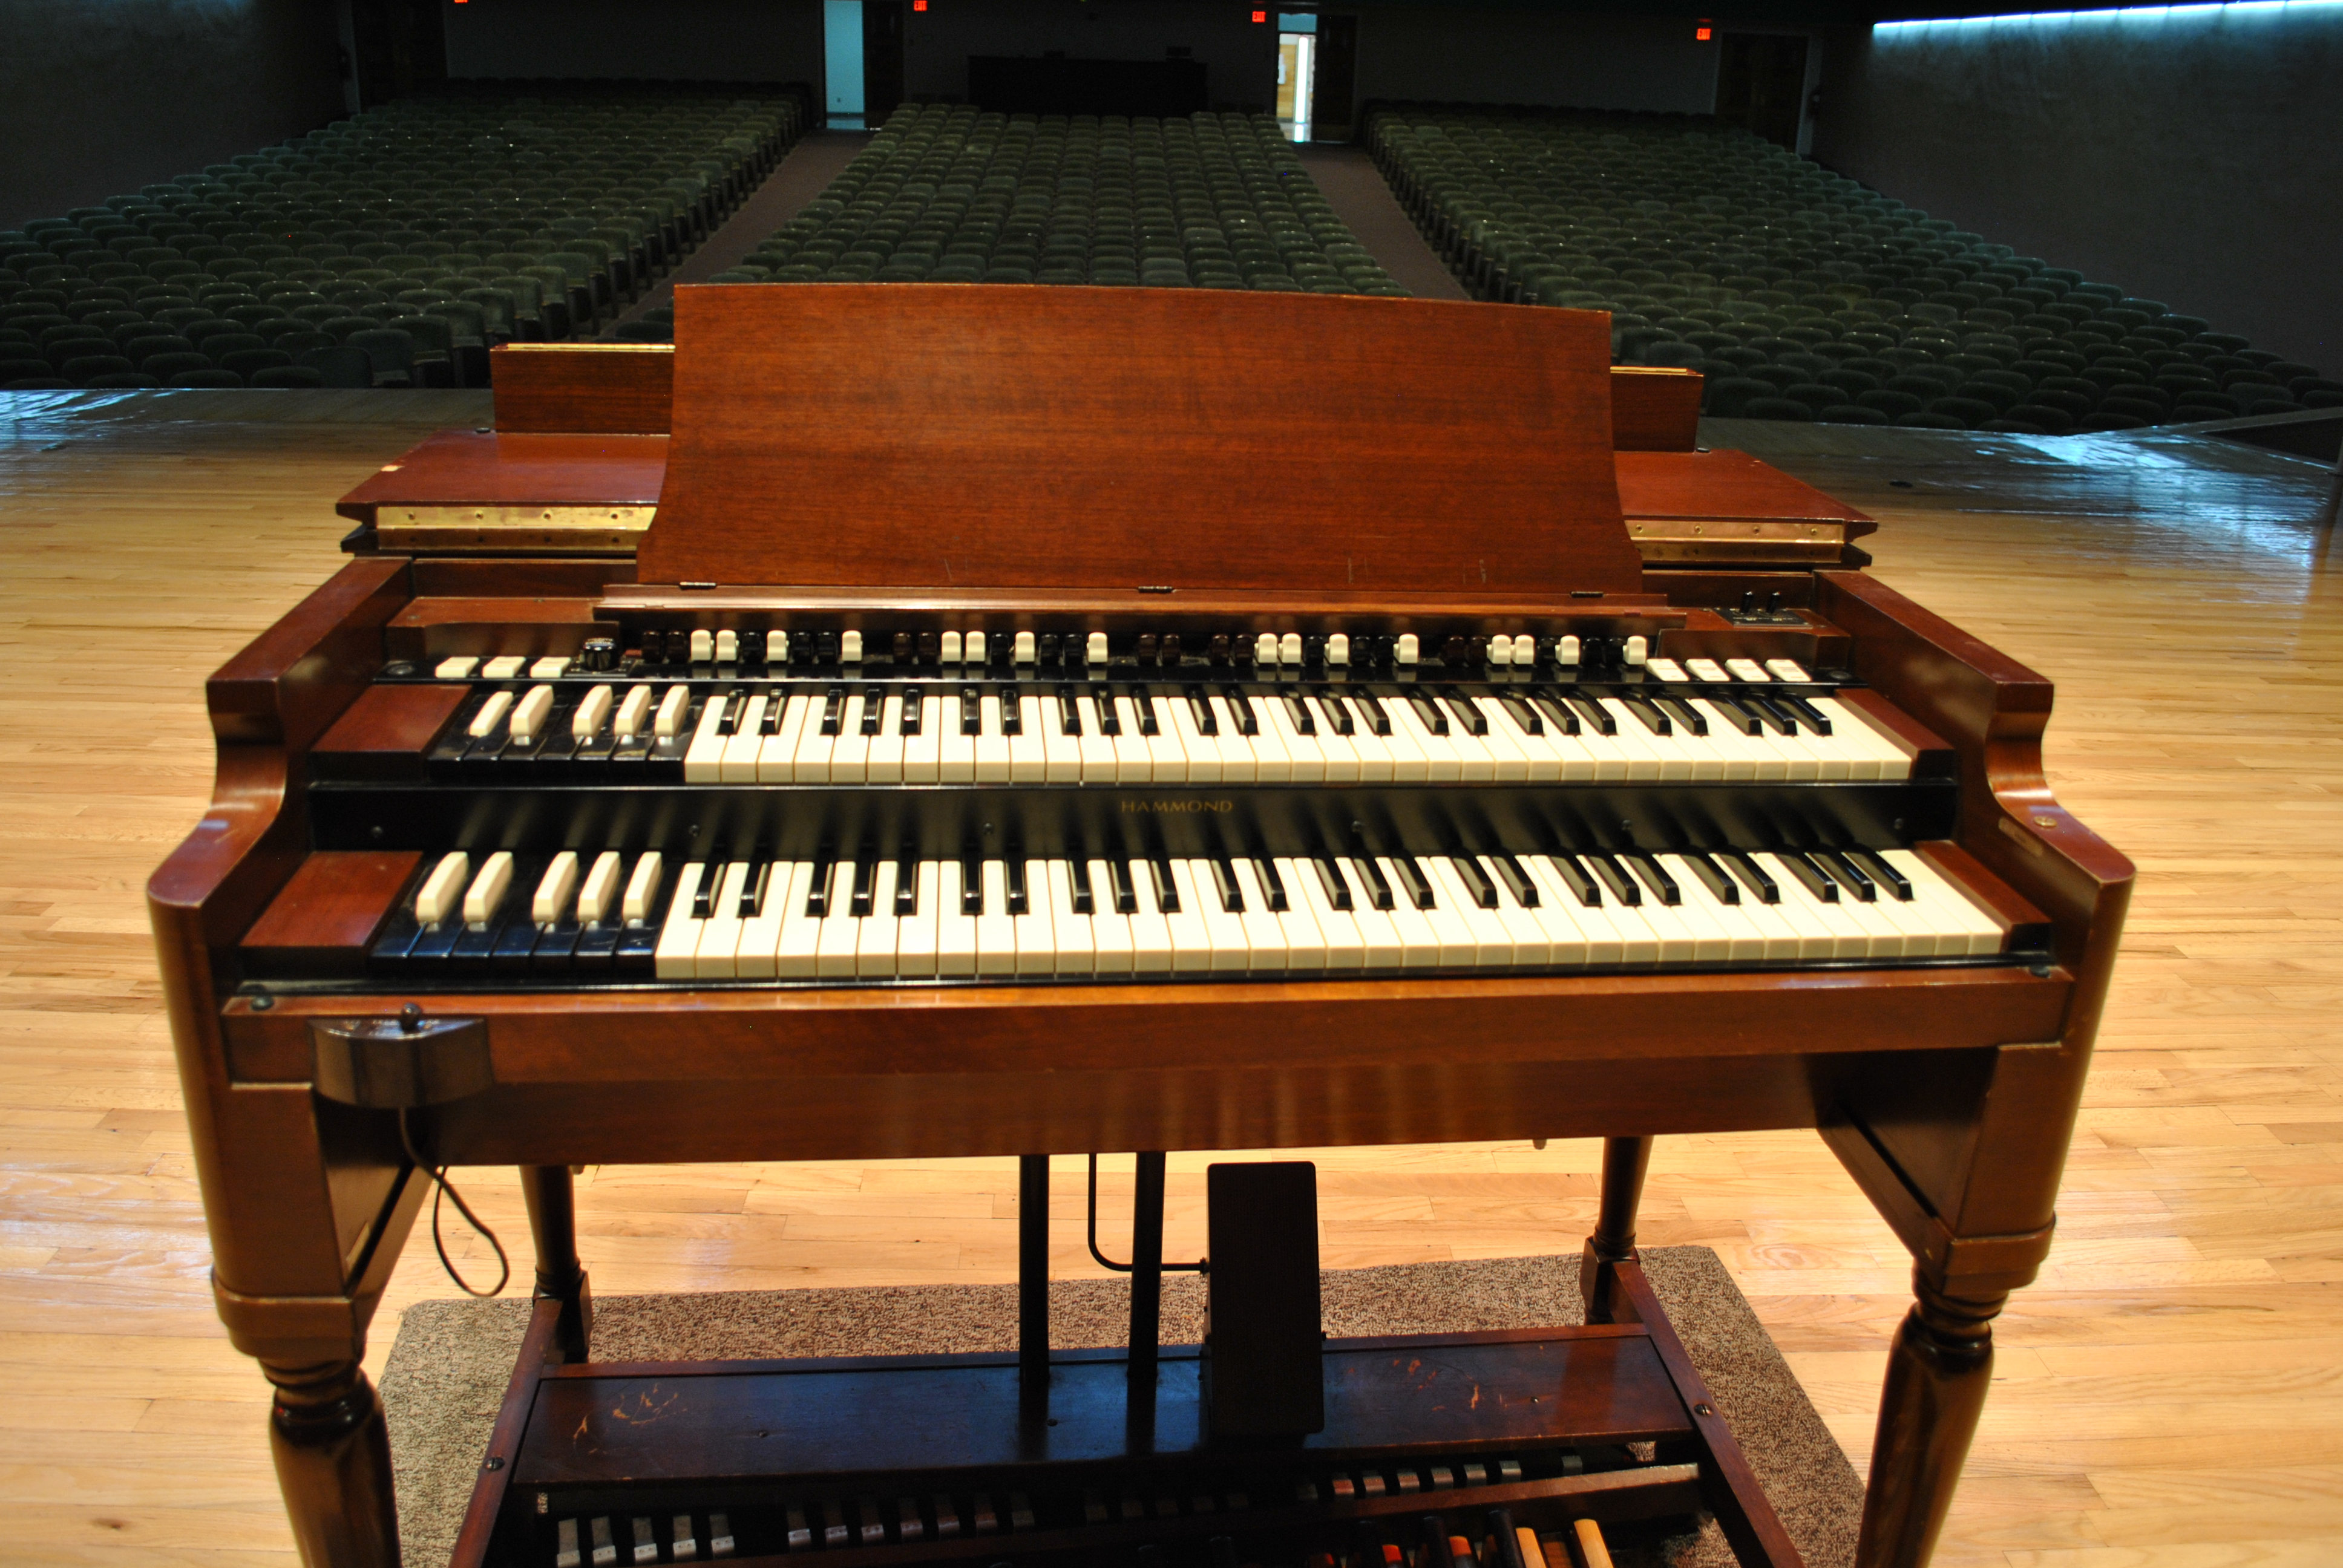 Image of organ available for bid